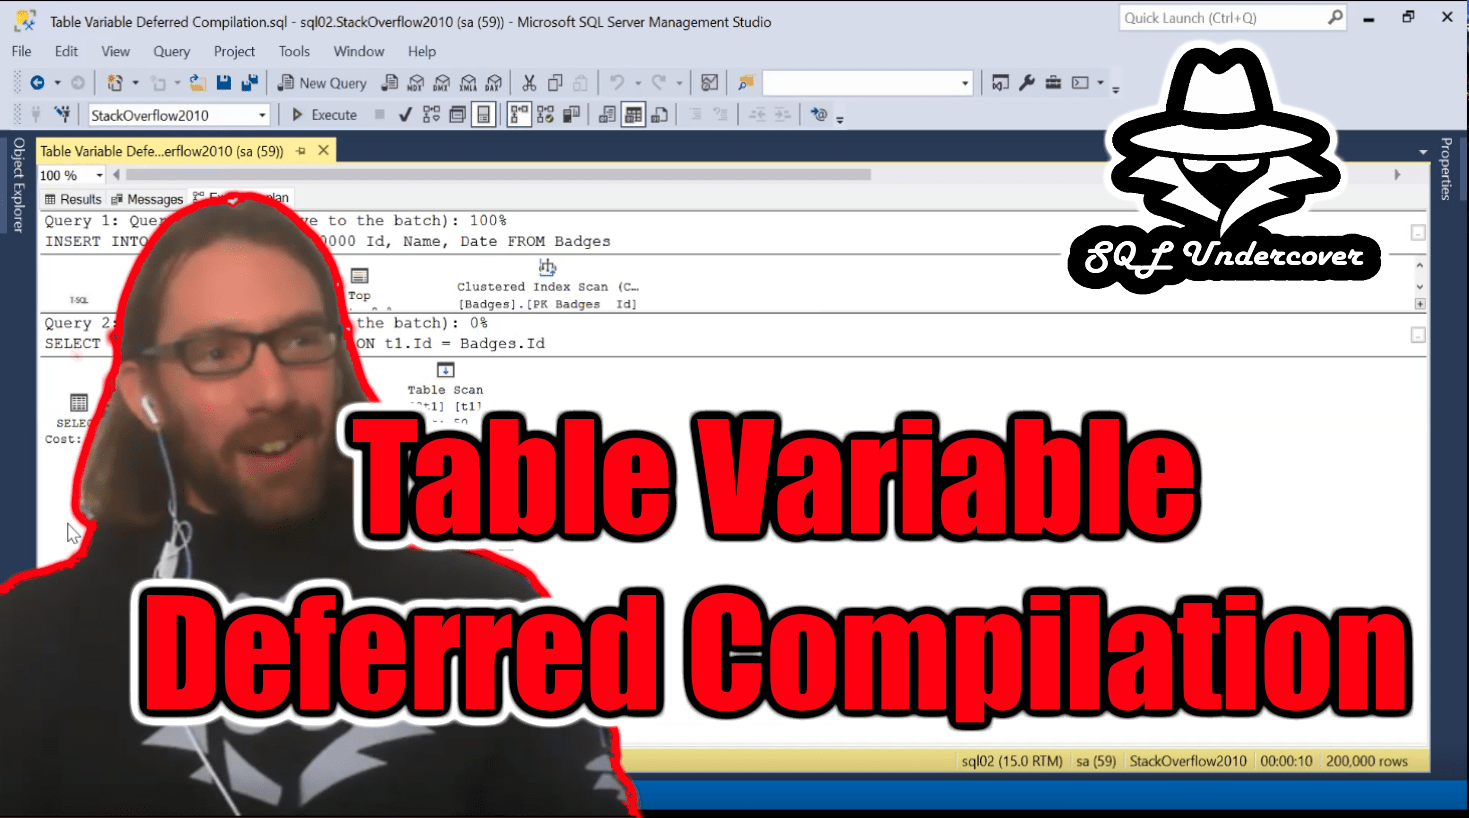 Table Variable Deferred Compilation screenshot